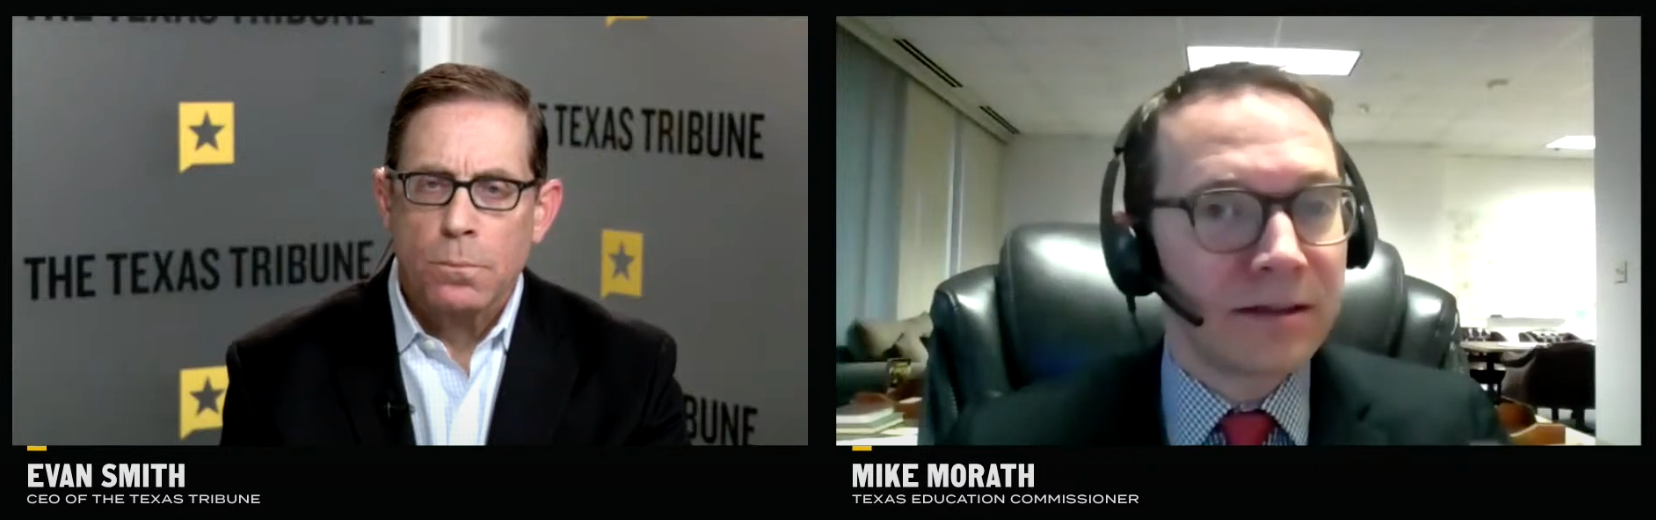 Evan Smith and Mike Morath